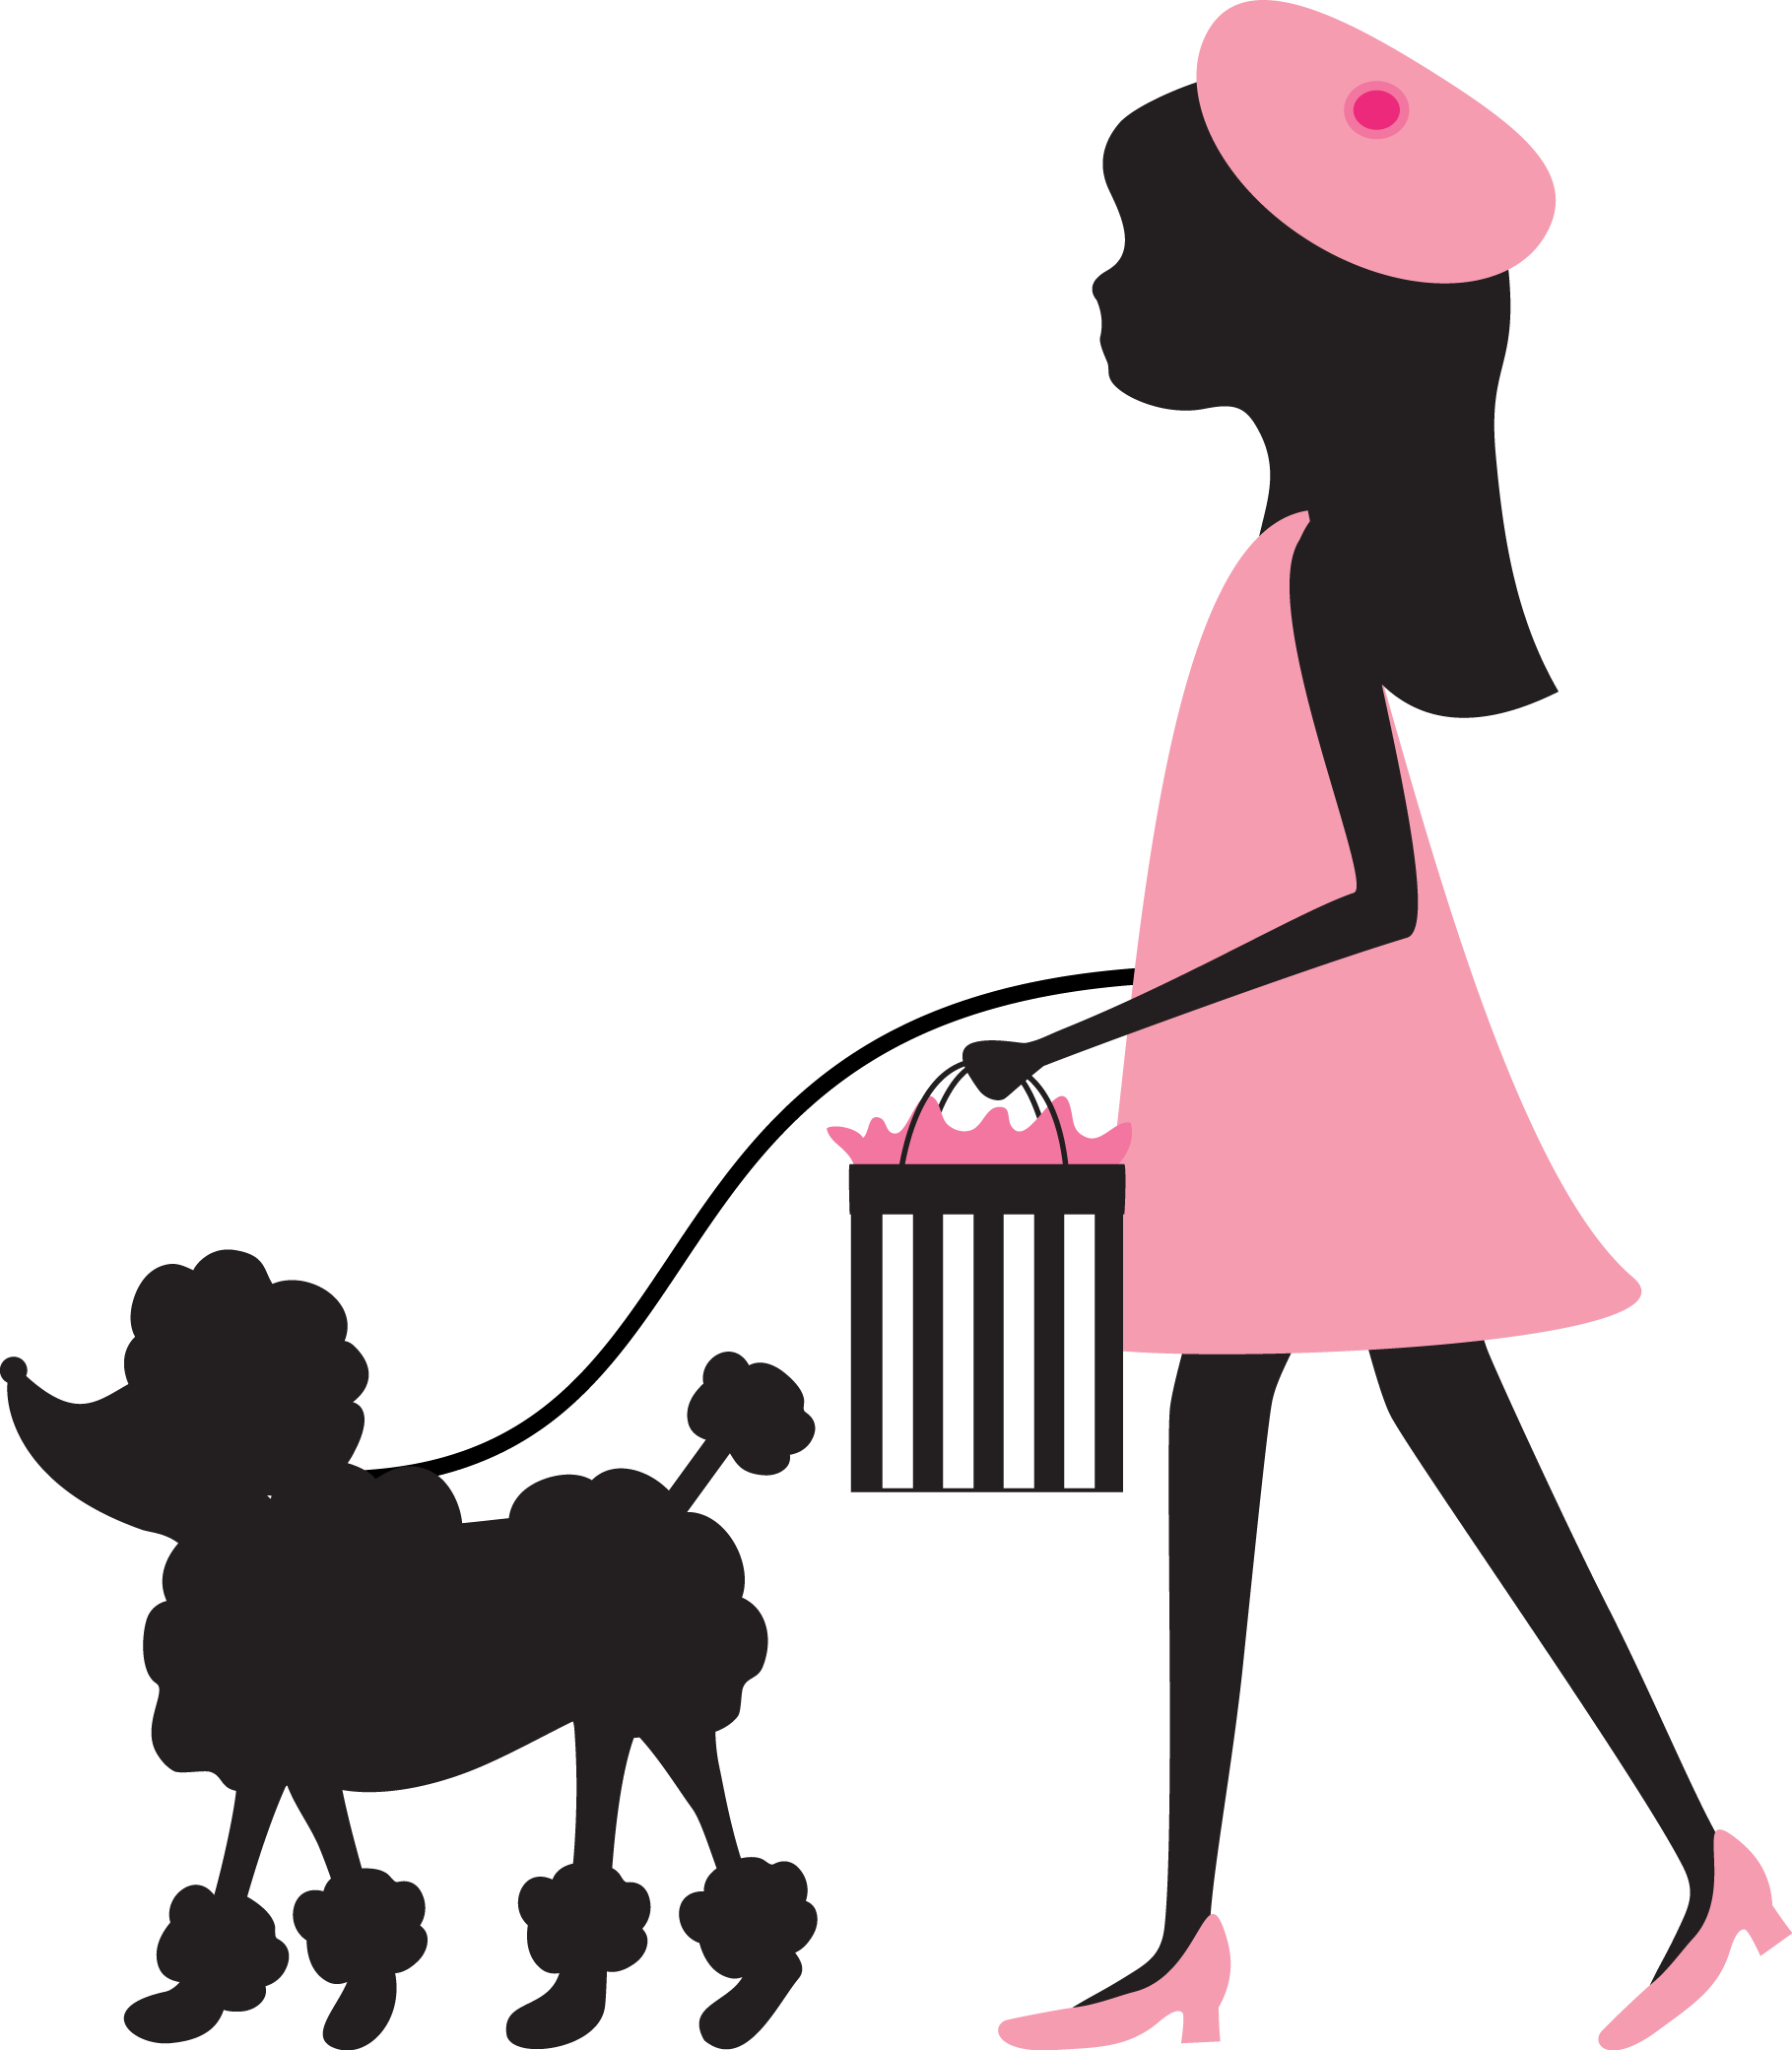 pin by ivanna ivanovna on pinterest clip art rh pinterest com French Poodle Silhouette Clip Art French Poodle in Paris